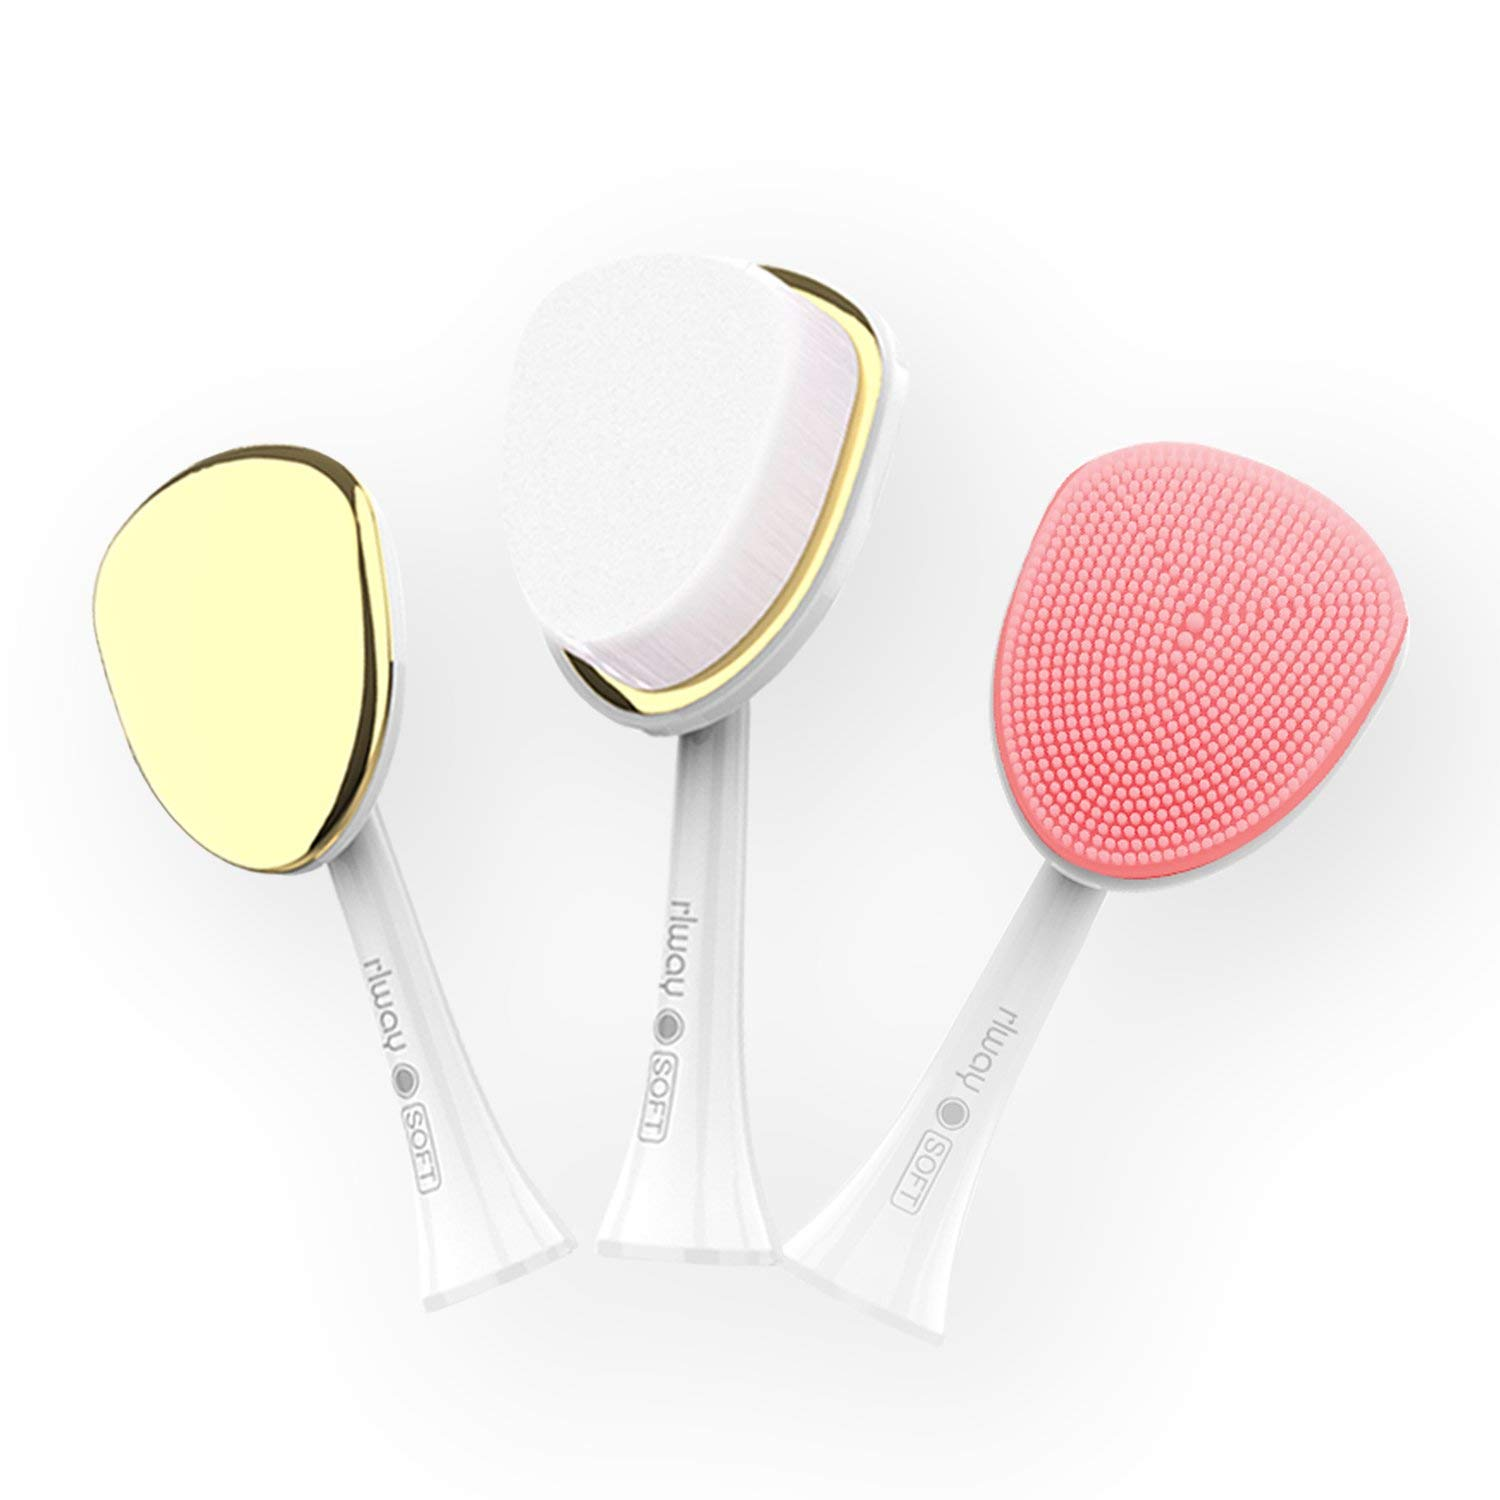 Facial Cleansing Brush, rlway 3 in 1 Advanced Cleansing System with Facial Cleansing Brush for Exfoliating and Microdermabrasion (White)